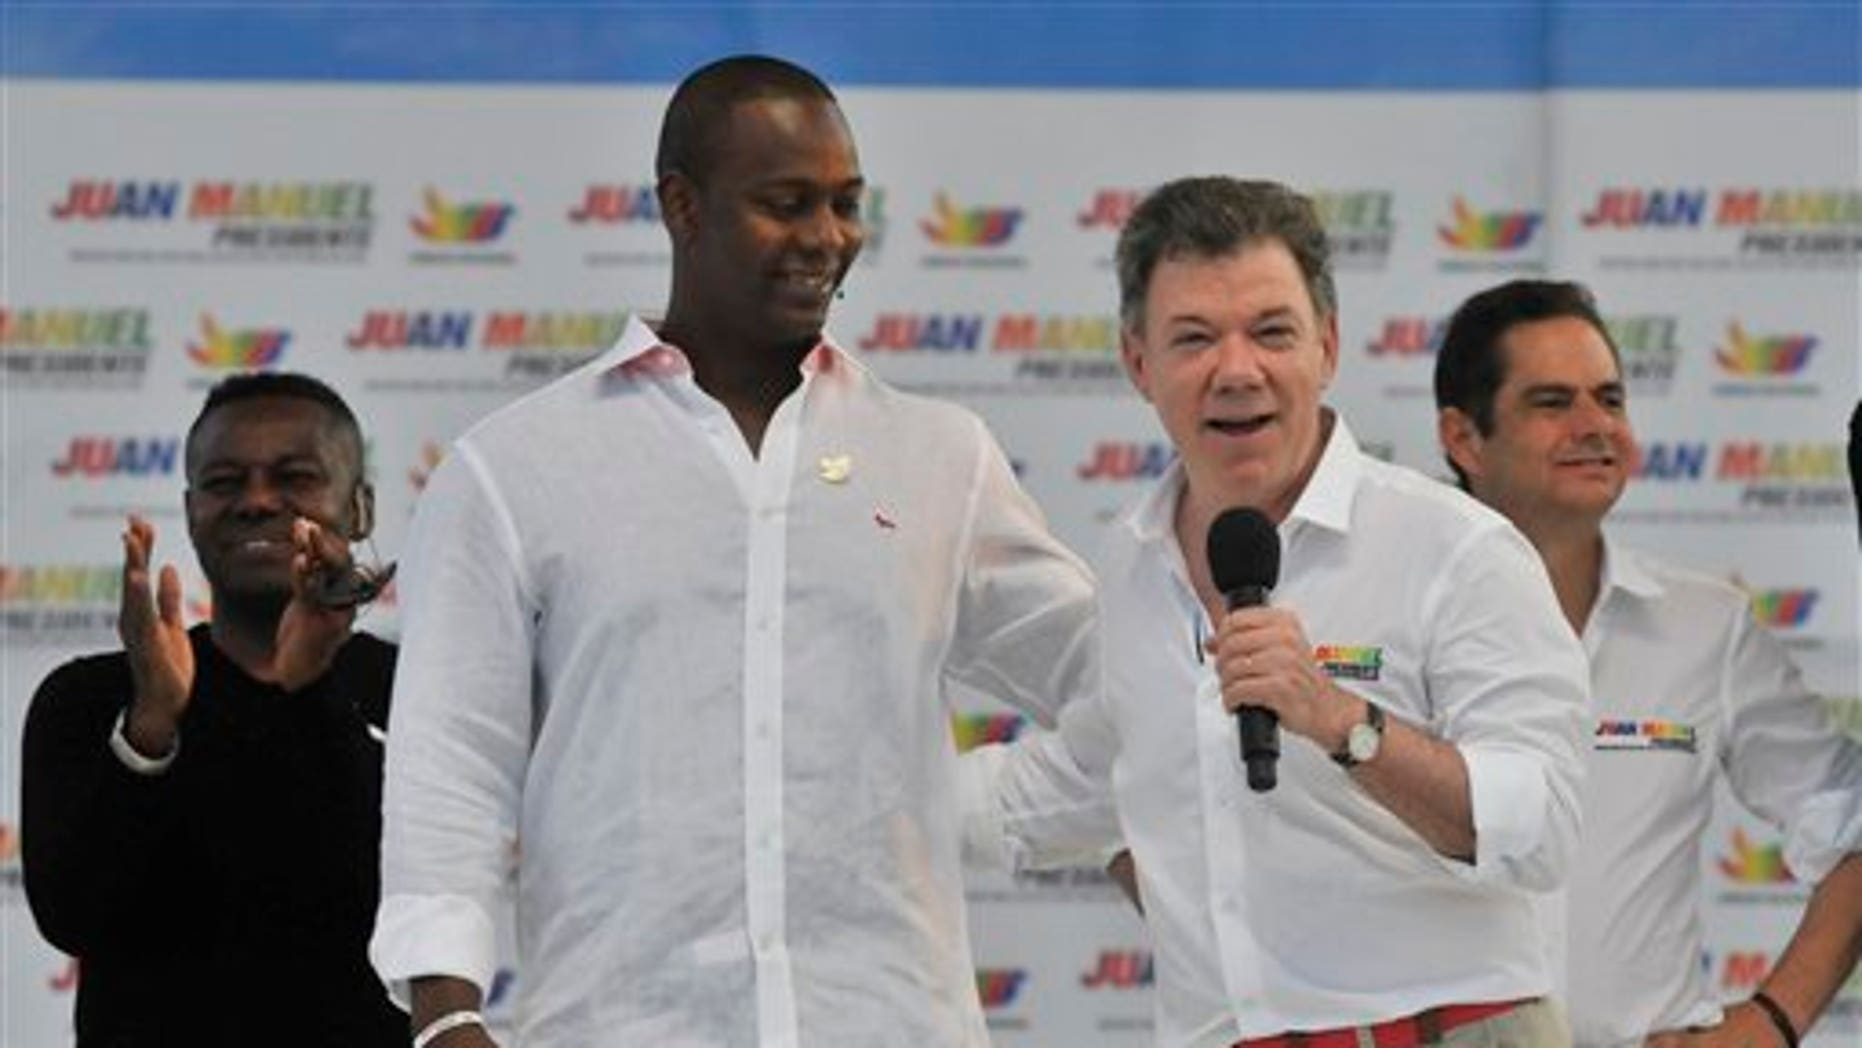 Colombia's President Juan Manuel Santos speaks next to retired baseball player Edgar Renteria during a campaign rally at the Tomas Arrieta baseball stadium in Barranquilla, Colombia, Sunday, March 16, 2014. Santos, who is running for re-election, said on a televised statement on Tuesday, March 18, that he suffered an accident of incontinence product of surgery he underwent a year and a half ago to remove prostate cancer, that according to his doctor the accident is normal in patients who have suffered such intervention and that his health is optimal. (AP Photo)